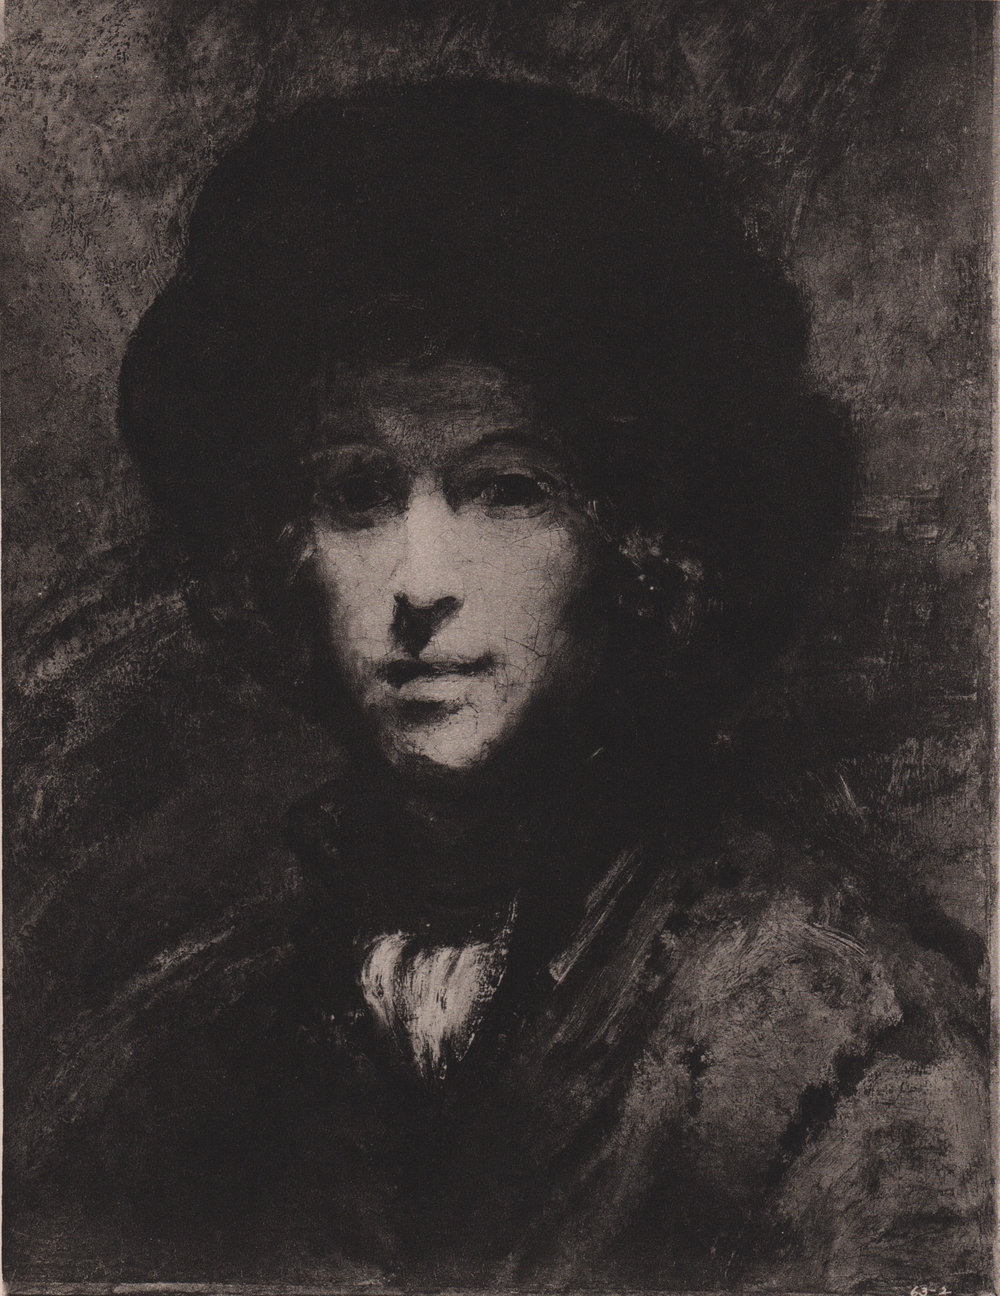 Rembrandt prints (unidentified source, circa 1890-1900)